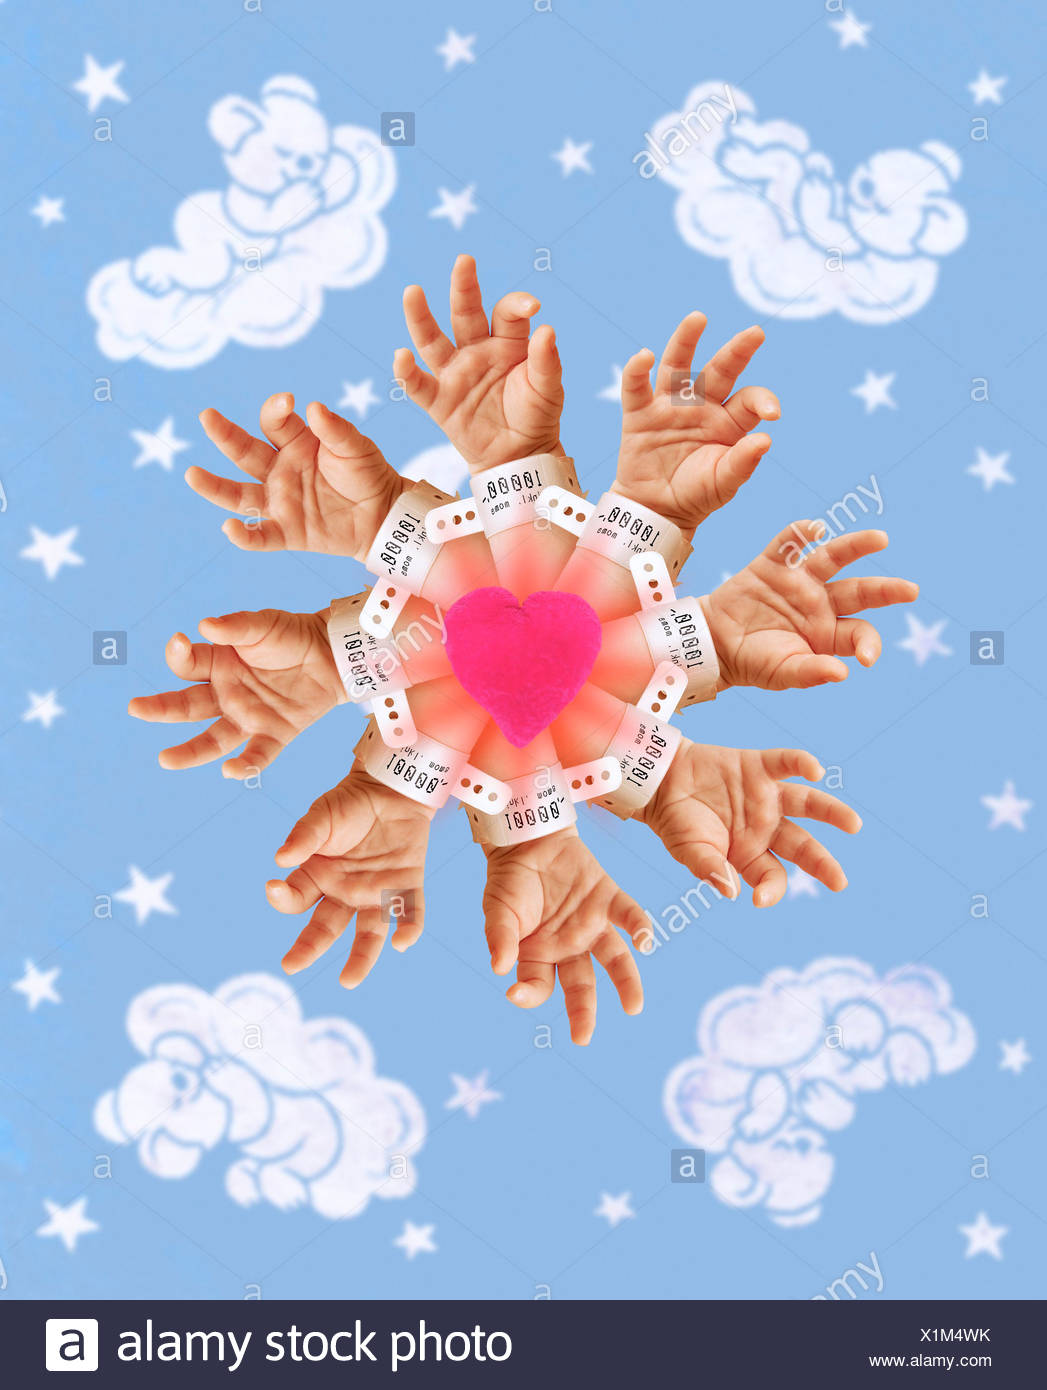 tagged hands extending radially from a heart with teddy bears